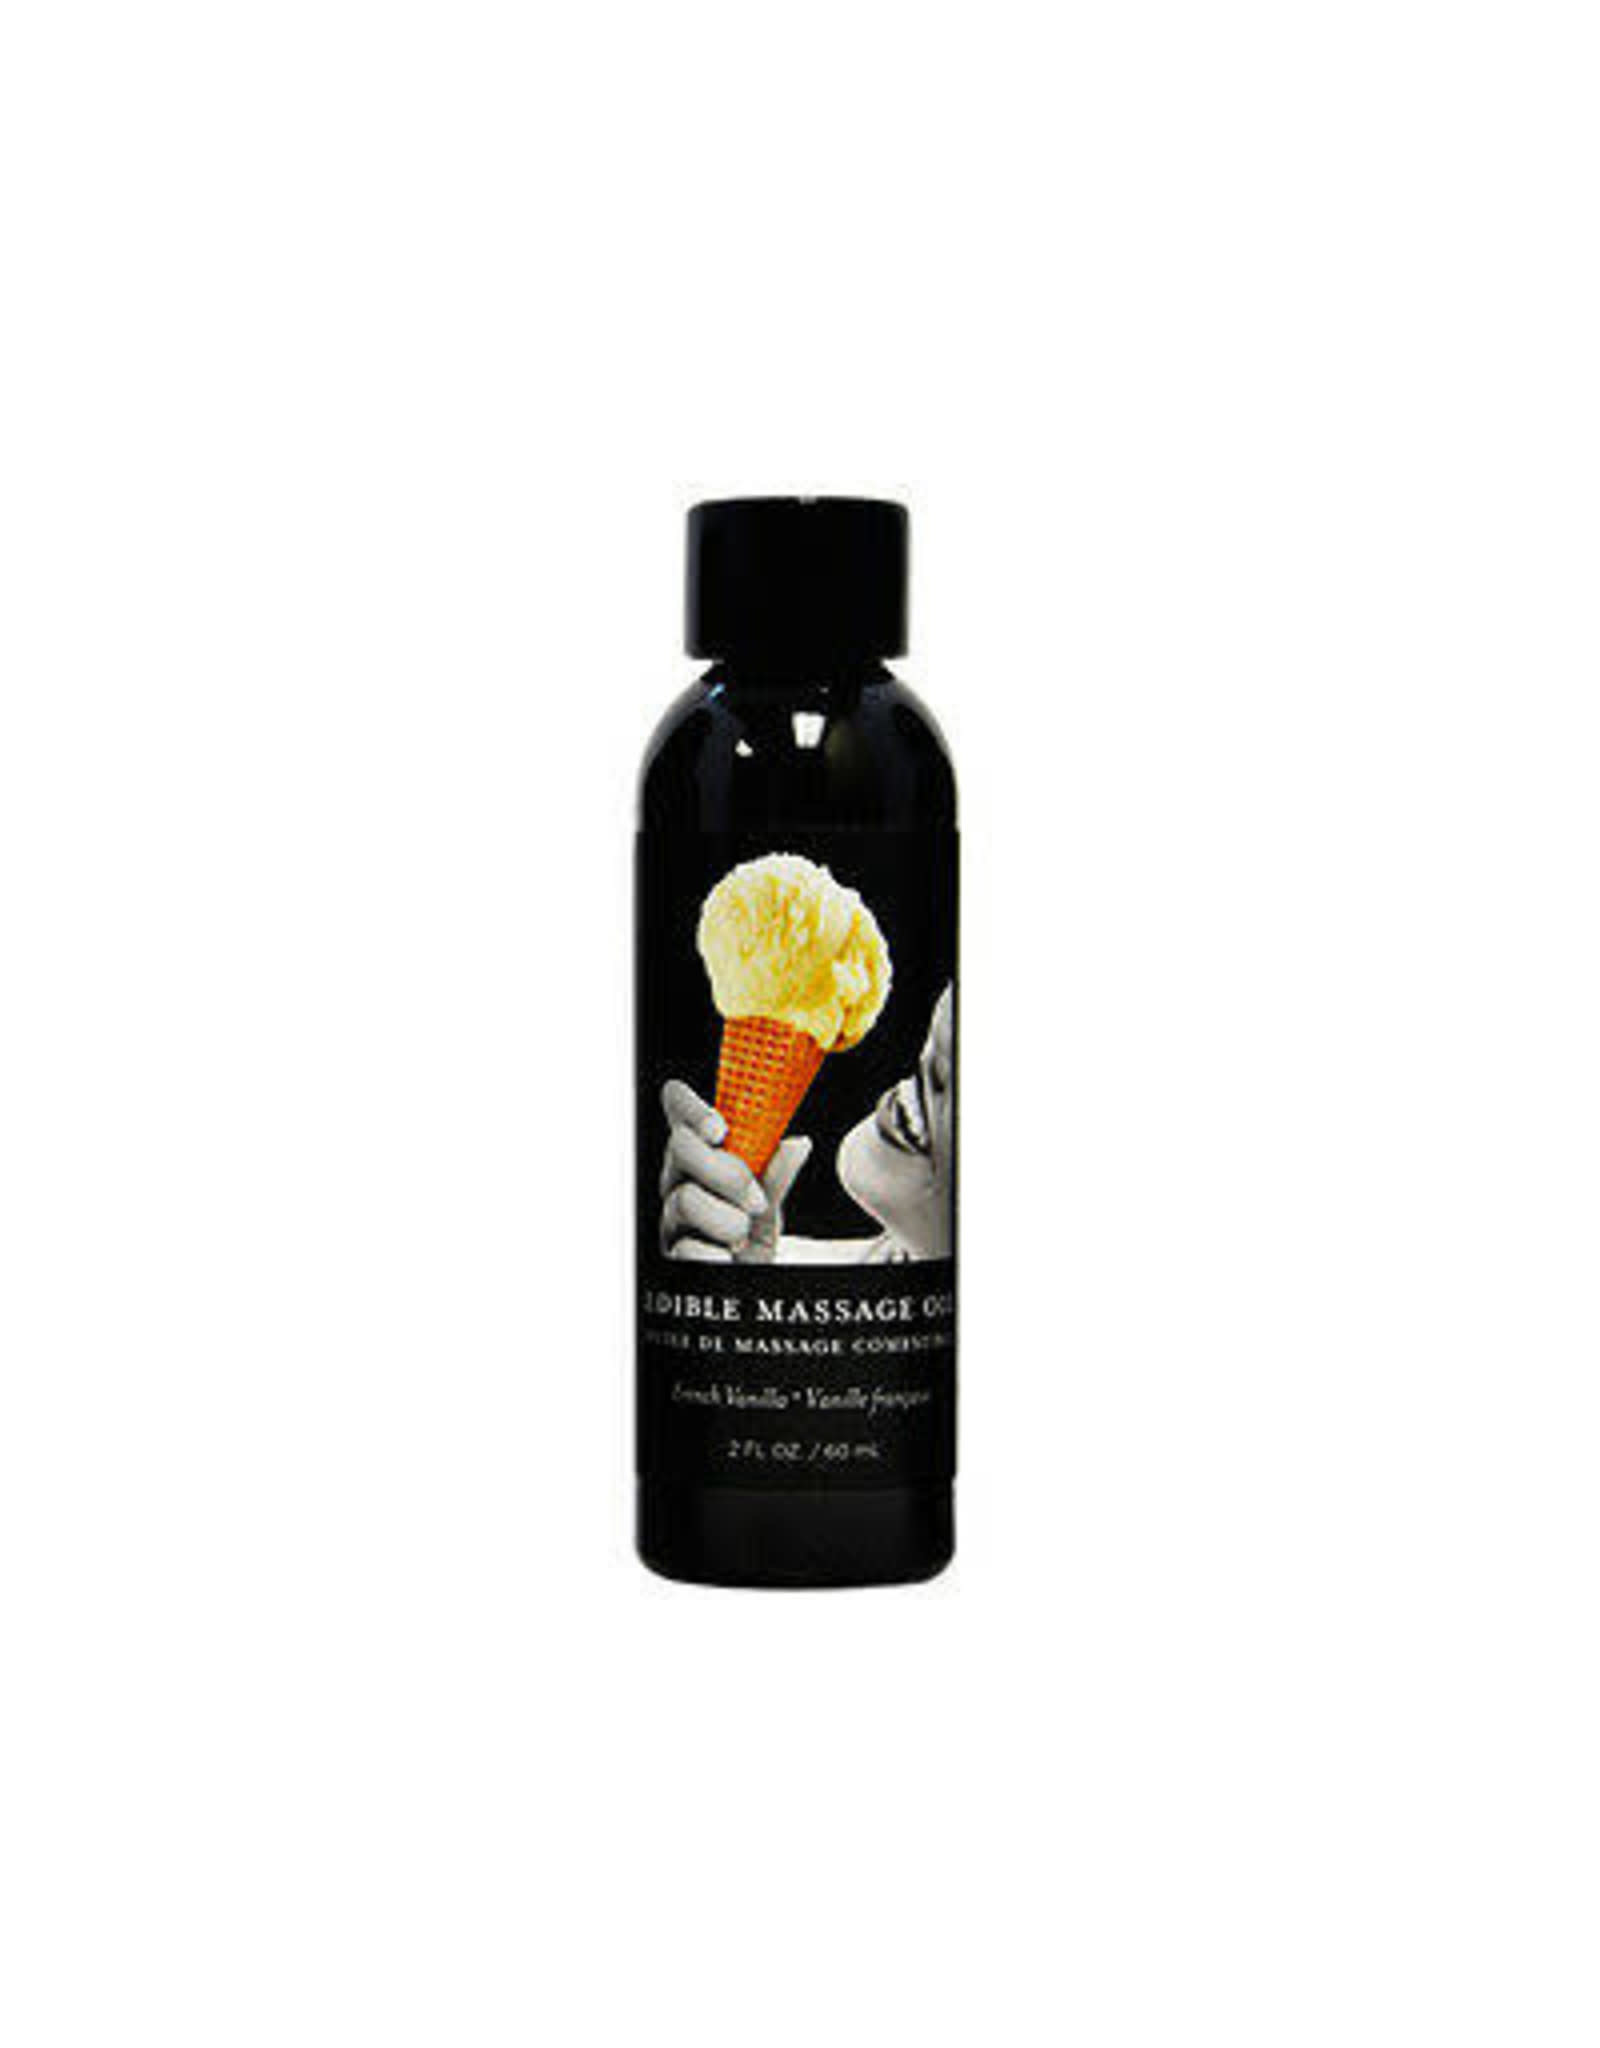 EARTHLY BODY - EDIBLE MASSAGE OIL 2OZ. - FRENCH VANILLA